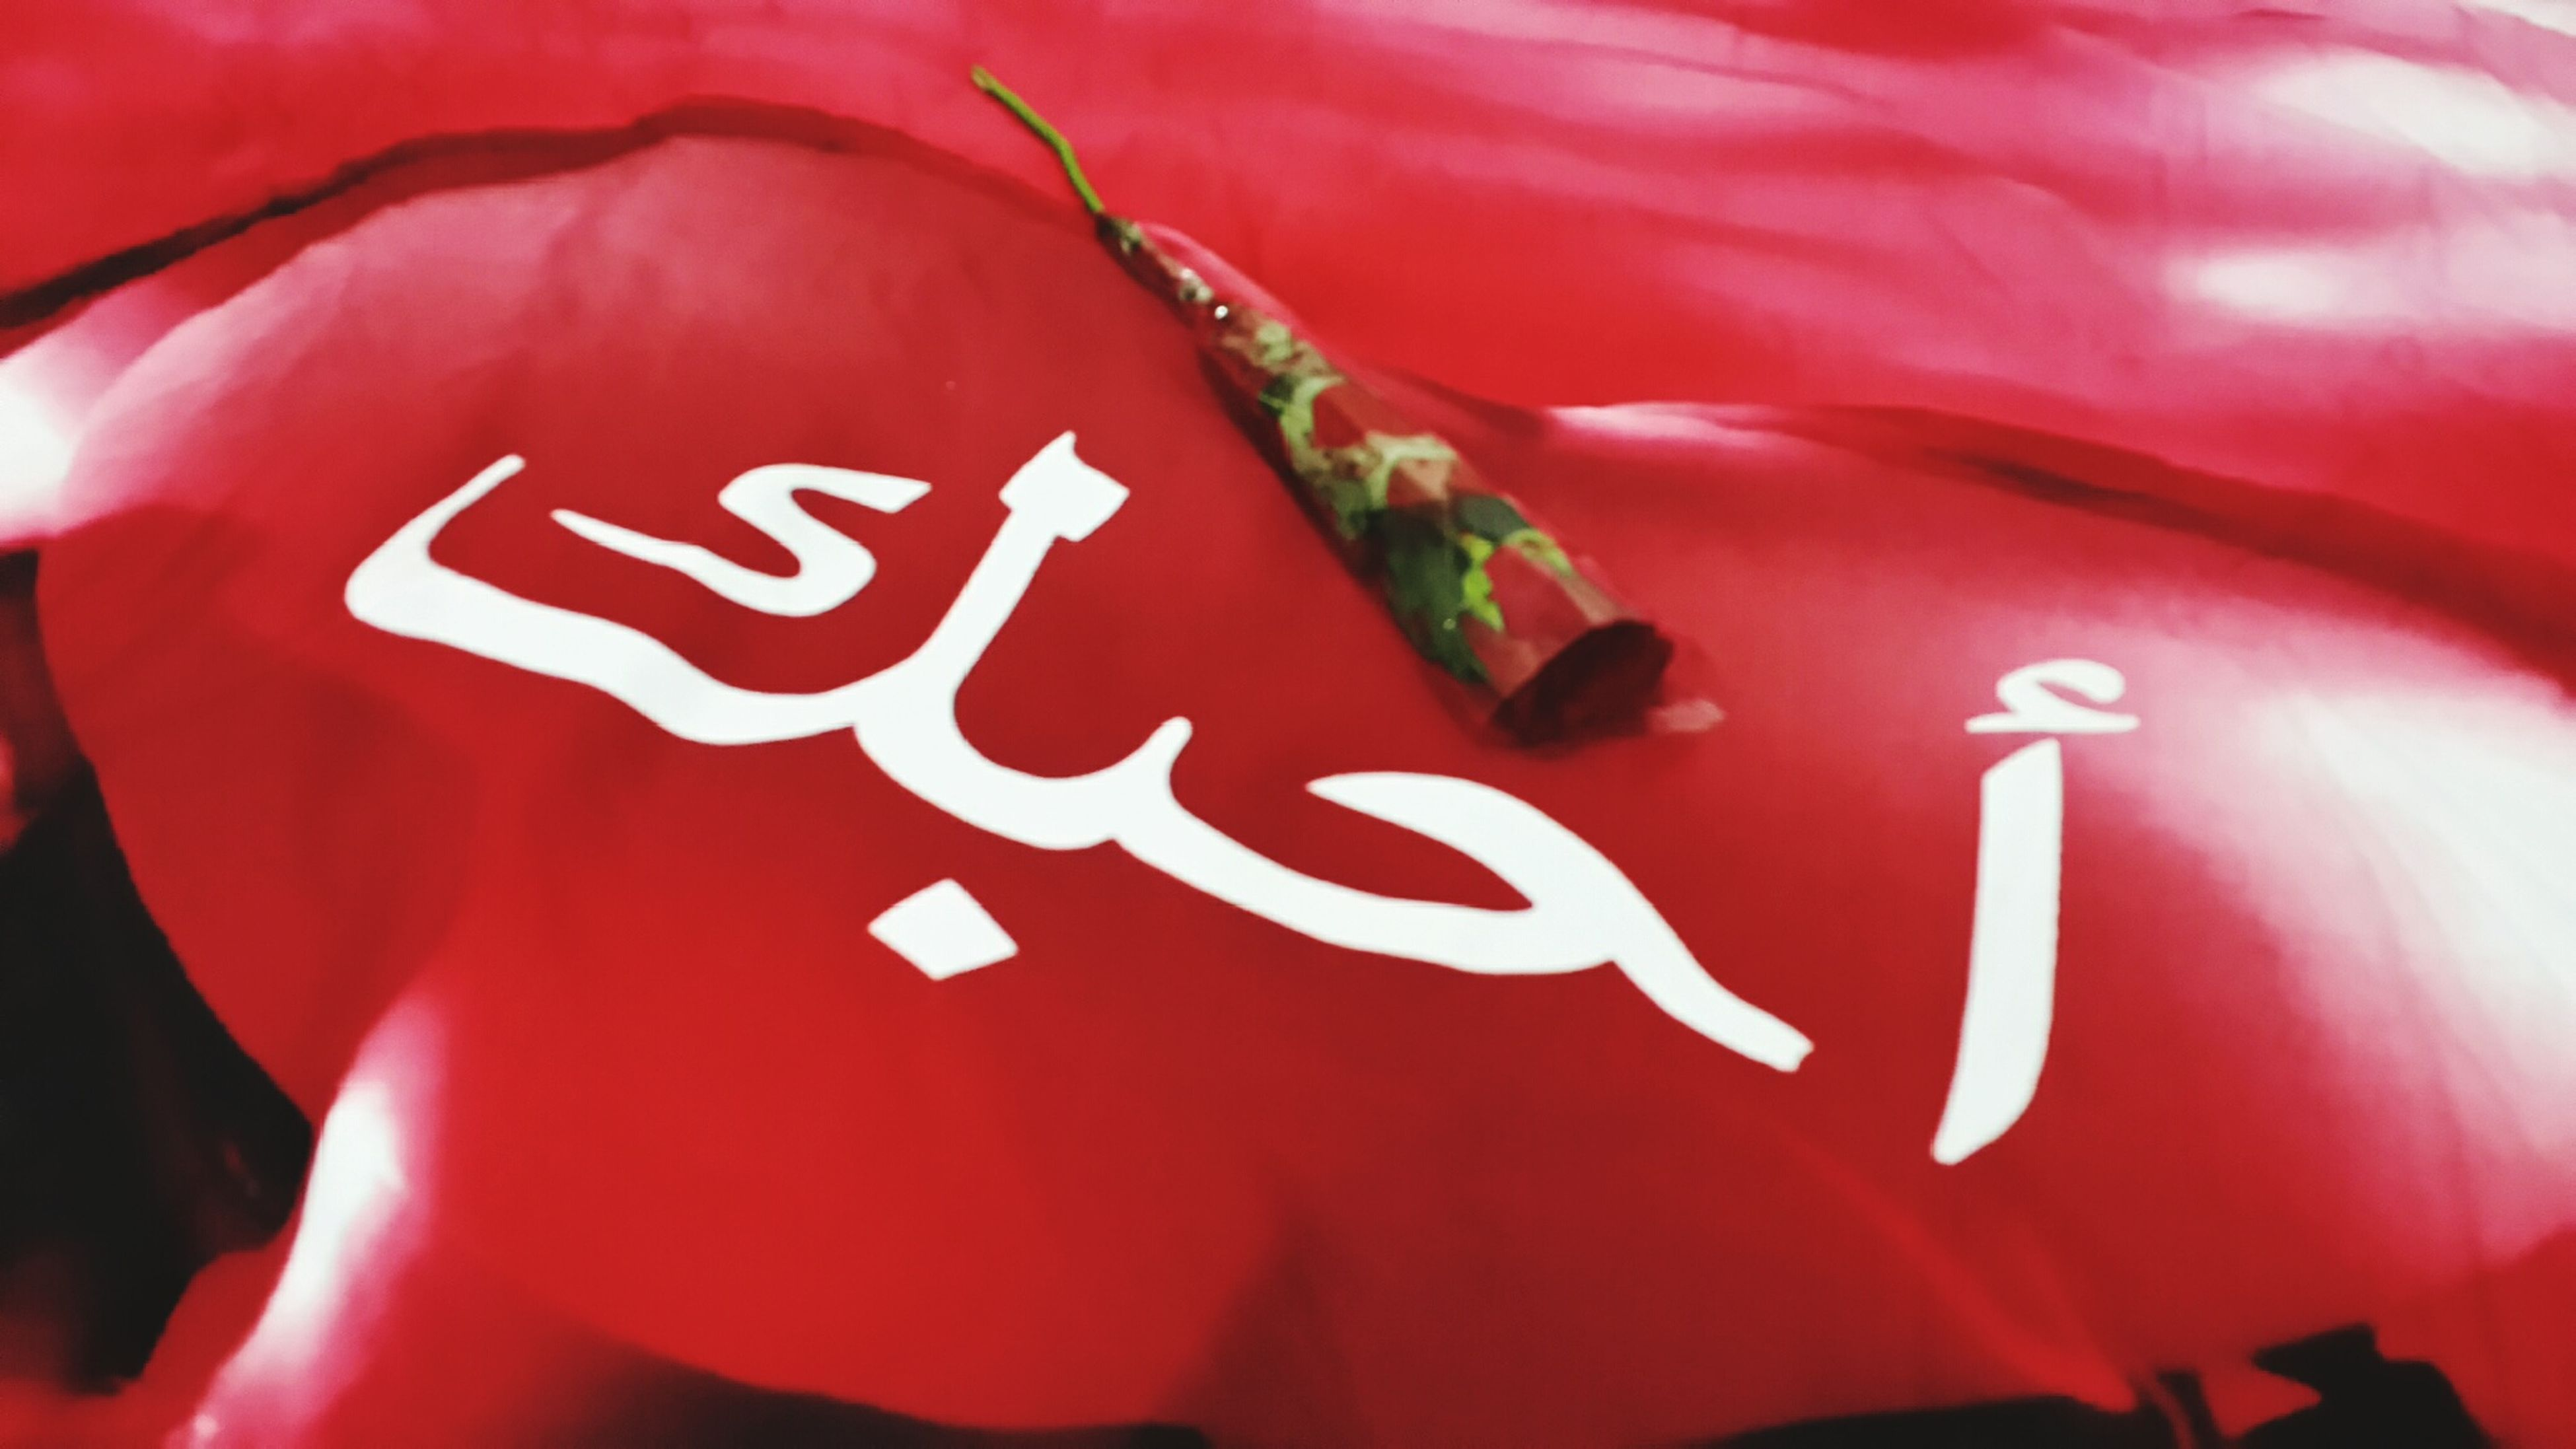 red, text, close-up, western script, communication, indoors, human representation, no people, creativity, day, focus on foreground, art and craft, white color, art, heart shape, backgrounds, detail, tradition